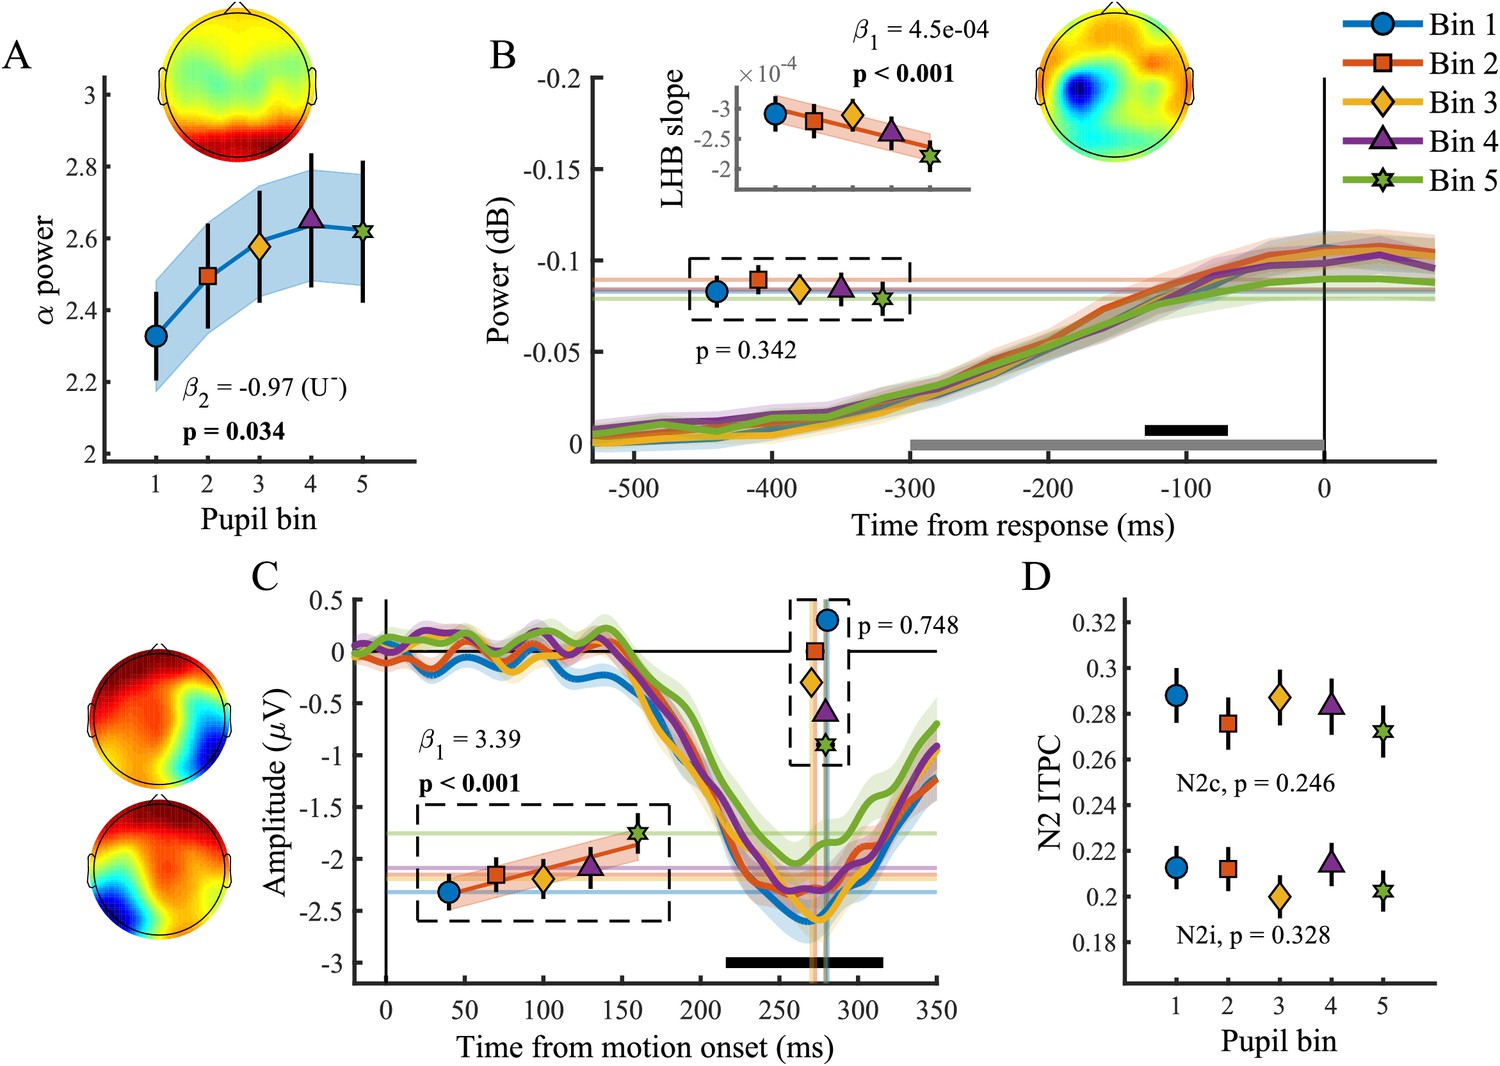 Behavioural and neural signatures of perceptual decision-making are on